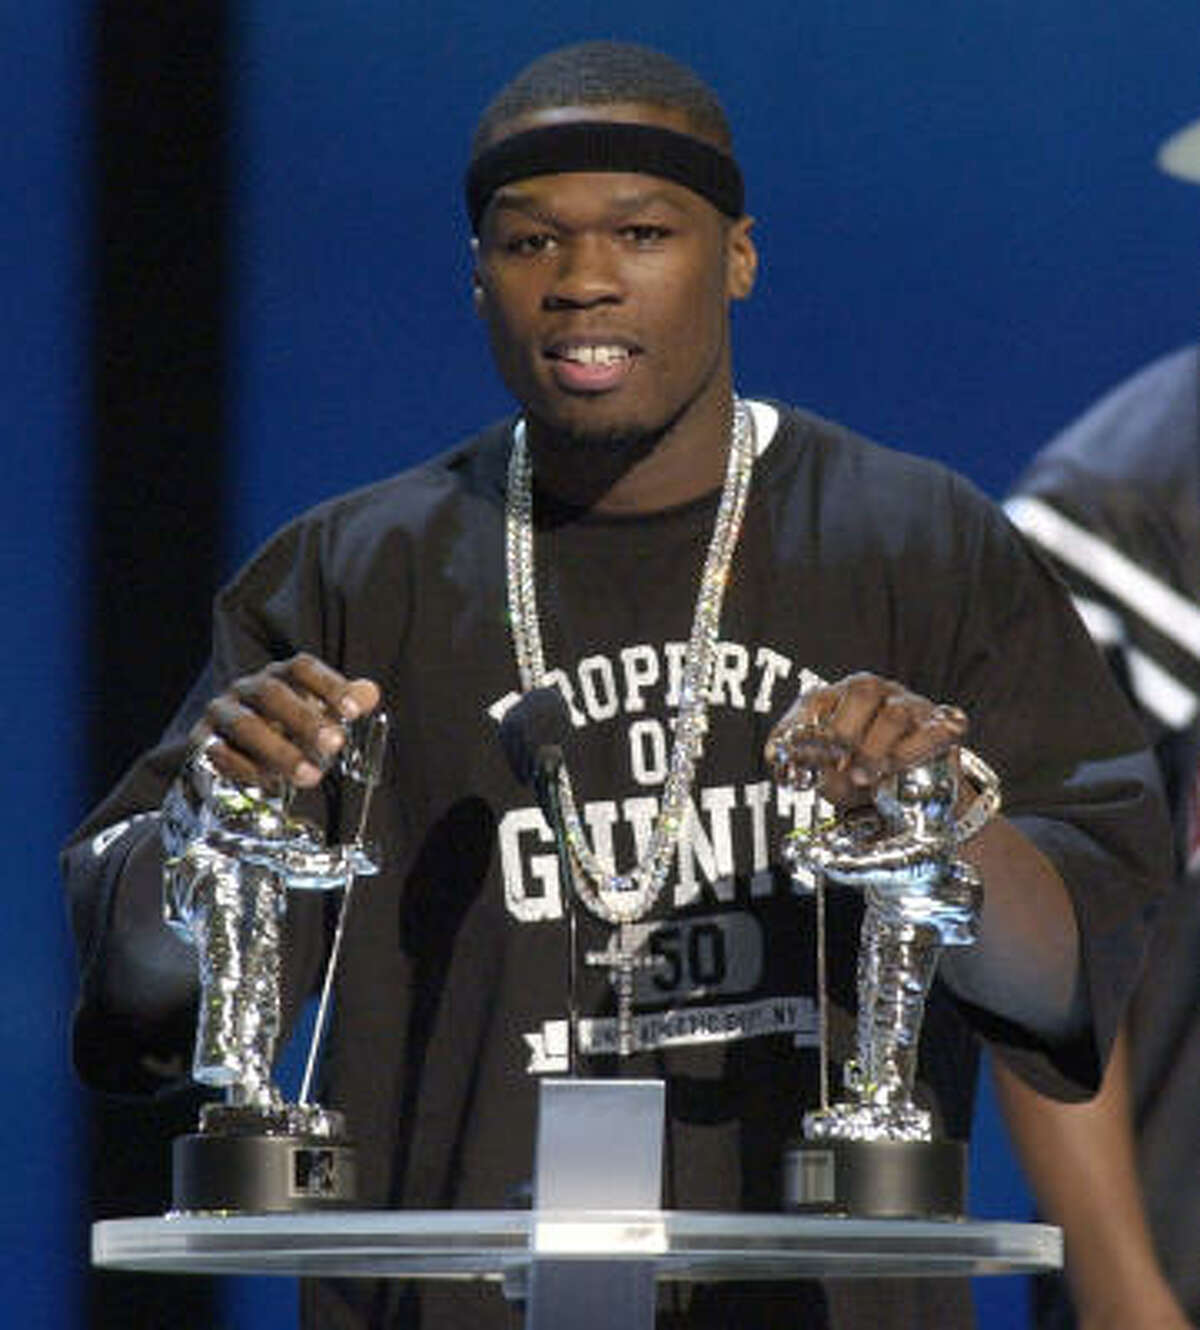 Hip-hop artist 50 Cent accepts the Best Rap Video of the Year award for In Da Club at the MTV Video Awards in 2003. Watching the video on Yahoo moved Universal Music Group CEO Doug Morris to pull his company's videos from the Web portal until it agreed to a licensing agreement in 2005.